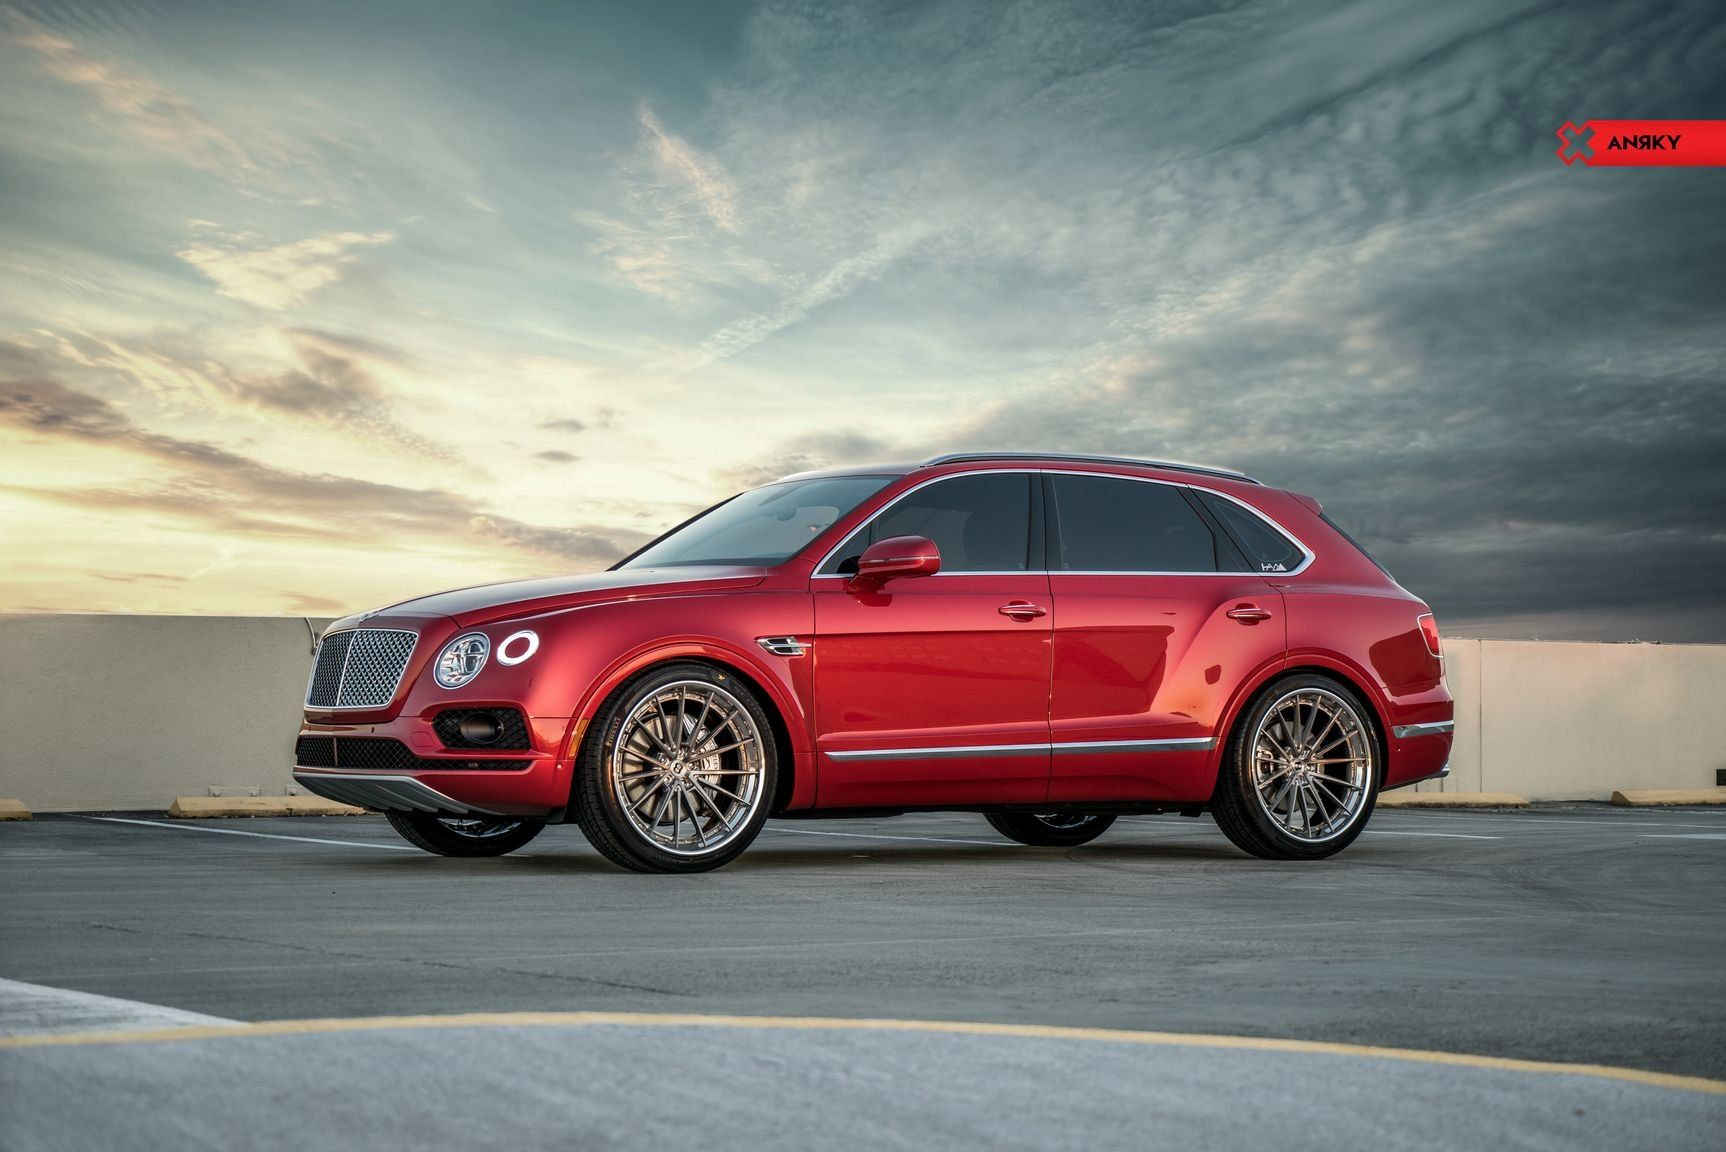 Royal Appearance Of Customized Red Bentley Bentayga New Trucks